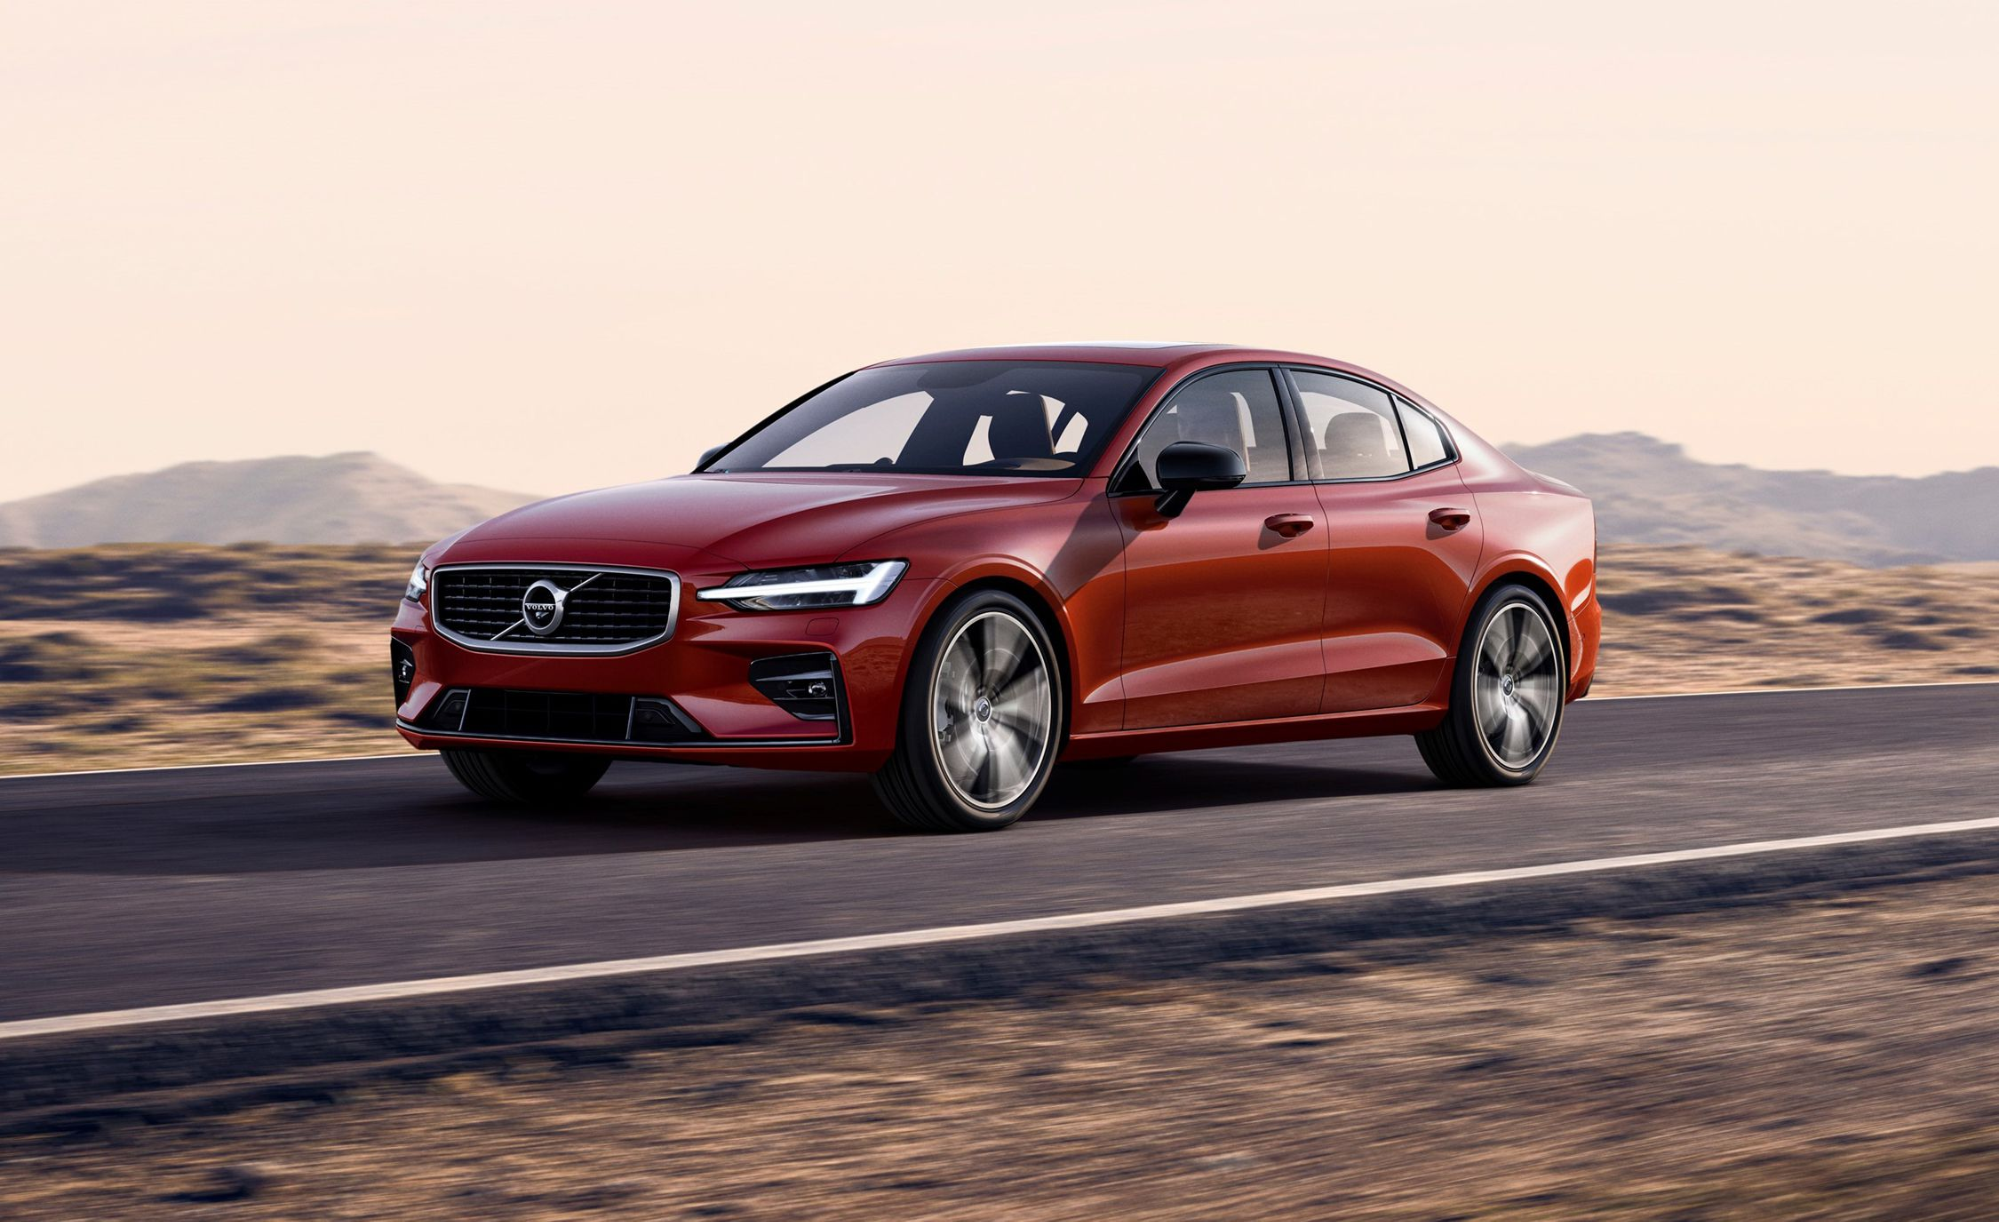 2020 Volvo S60 Exterior Styling